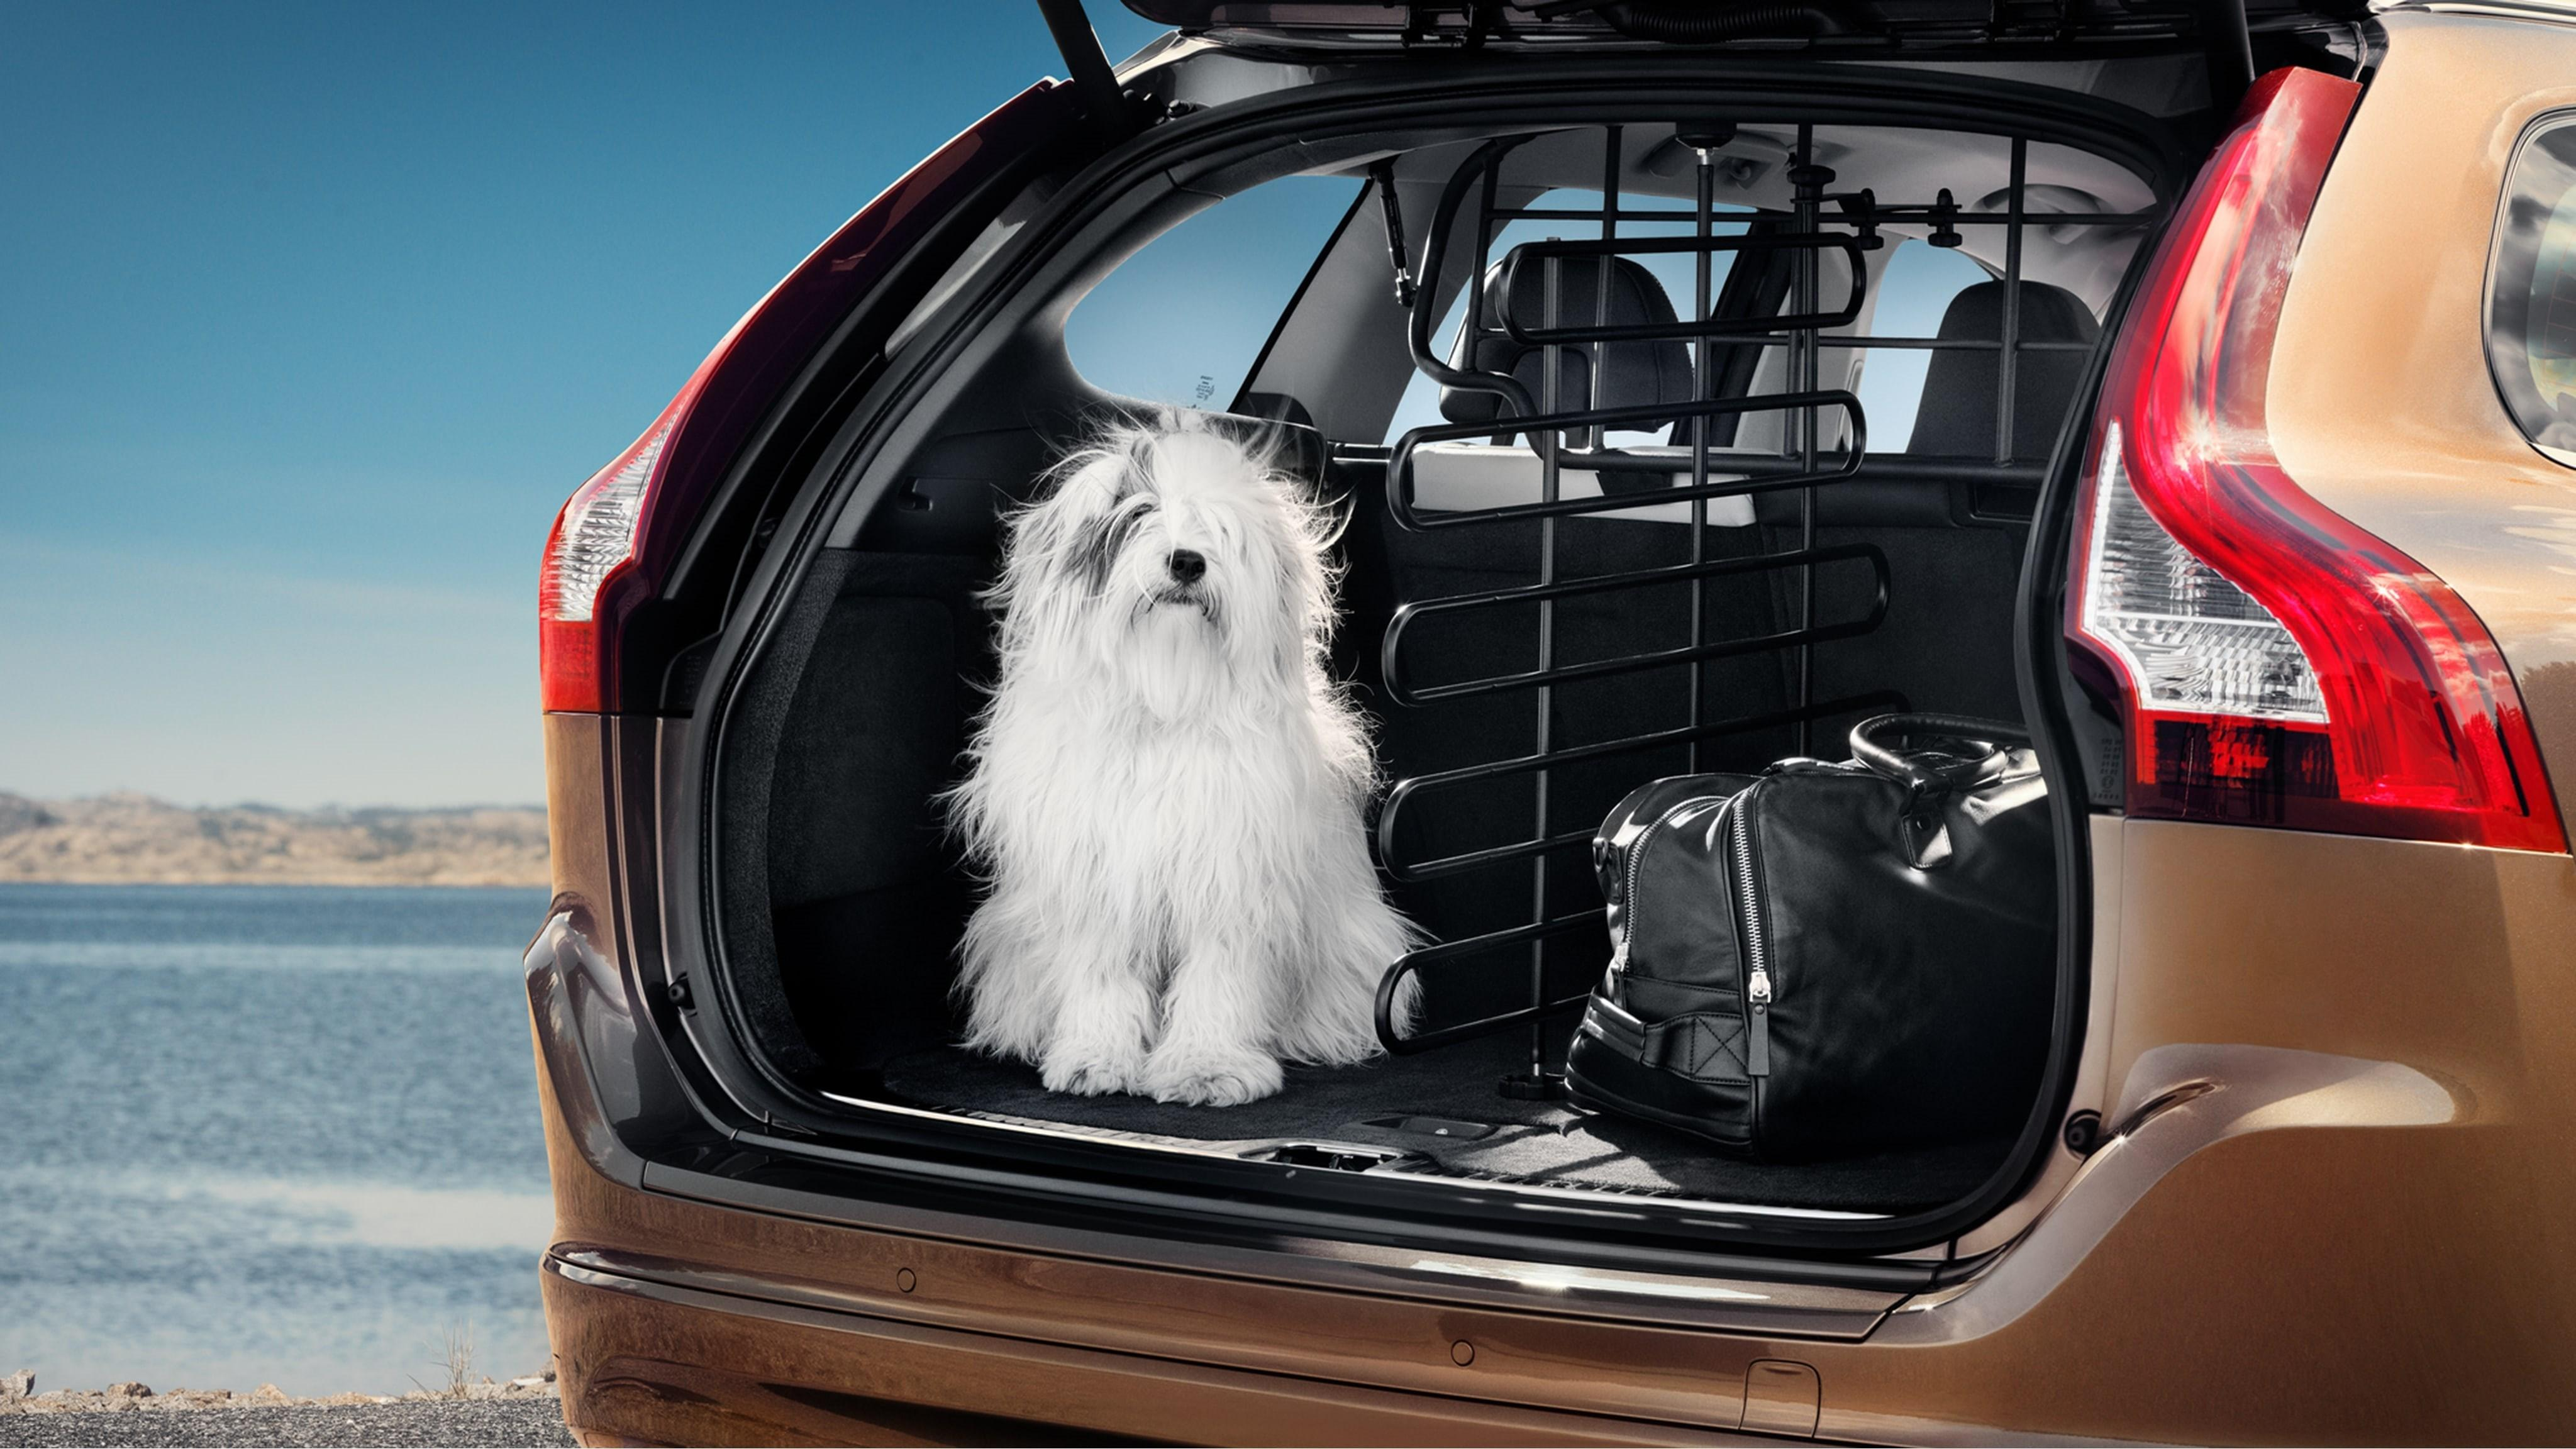 220900-chicago-dogs-find-new-homes-and-can-get-there-safely-thanks-to-volvo-and